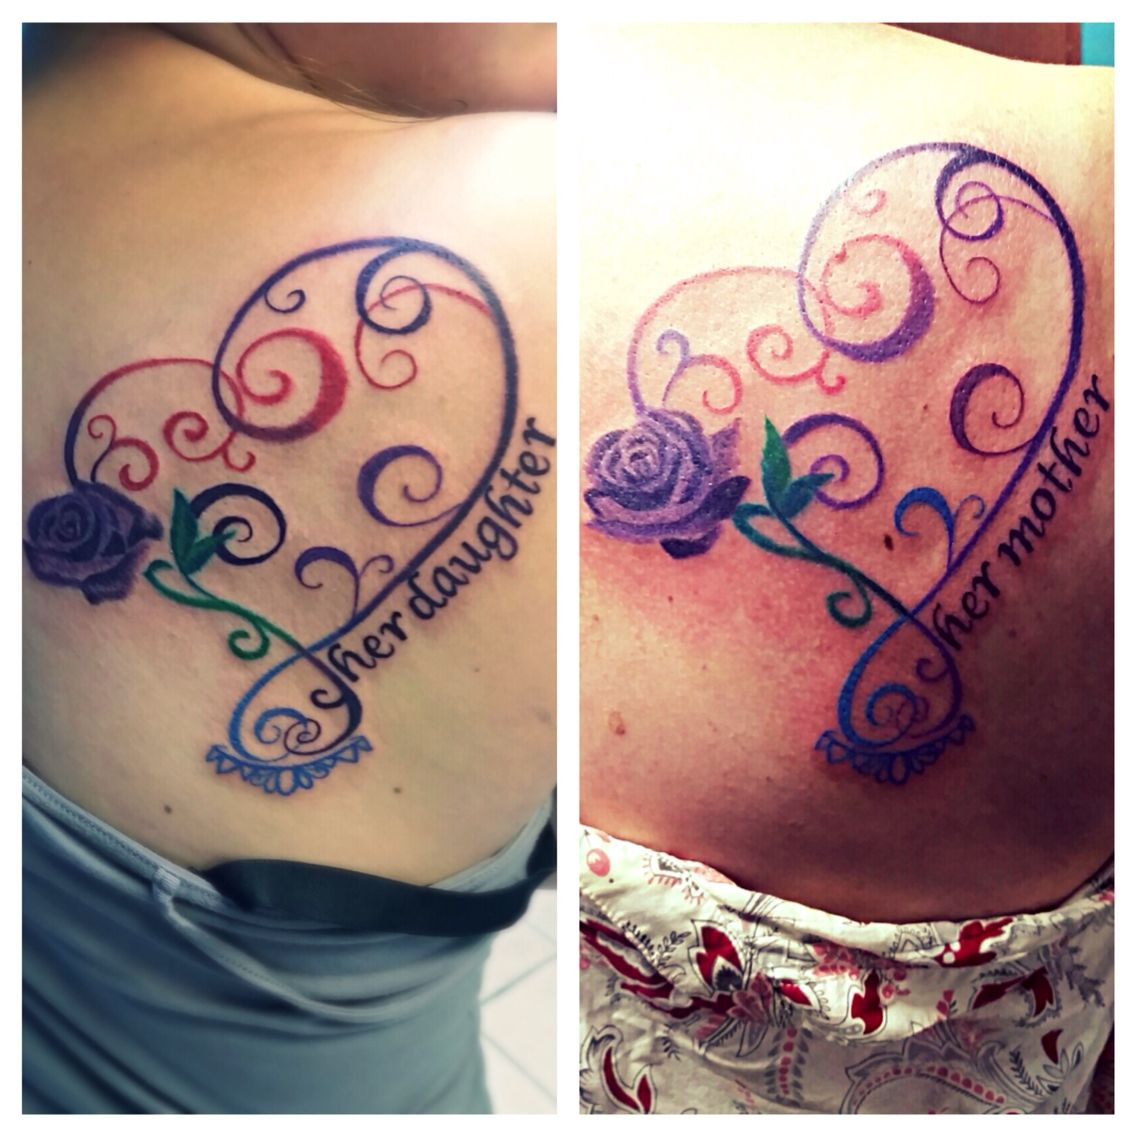 Tattoo For Moms With Meaning (6)